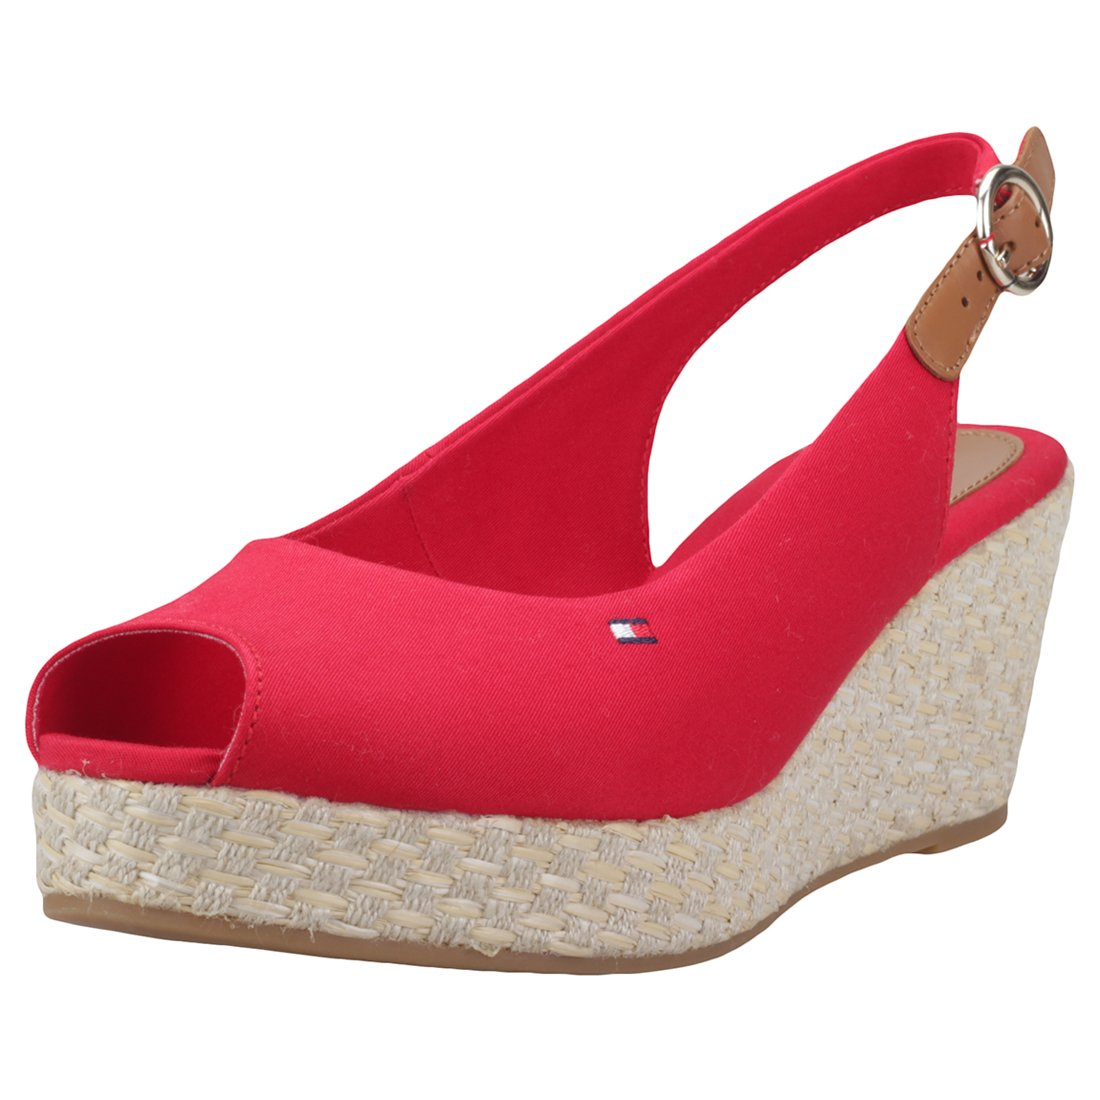 Tommy Hilfiger Iconic Elba Basic Sling Back Womens Wedges Red - 36 EU